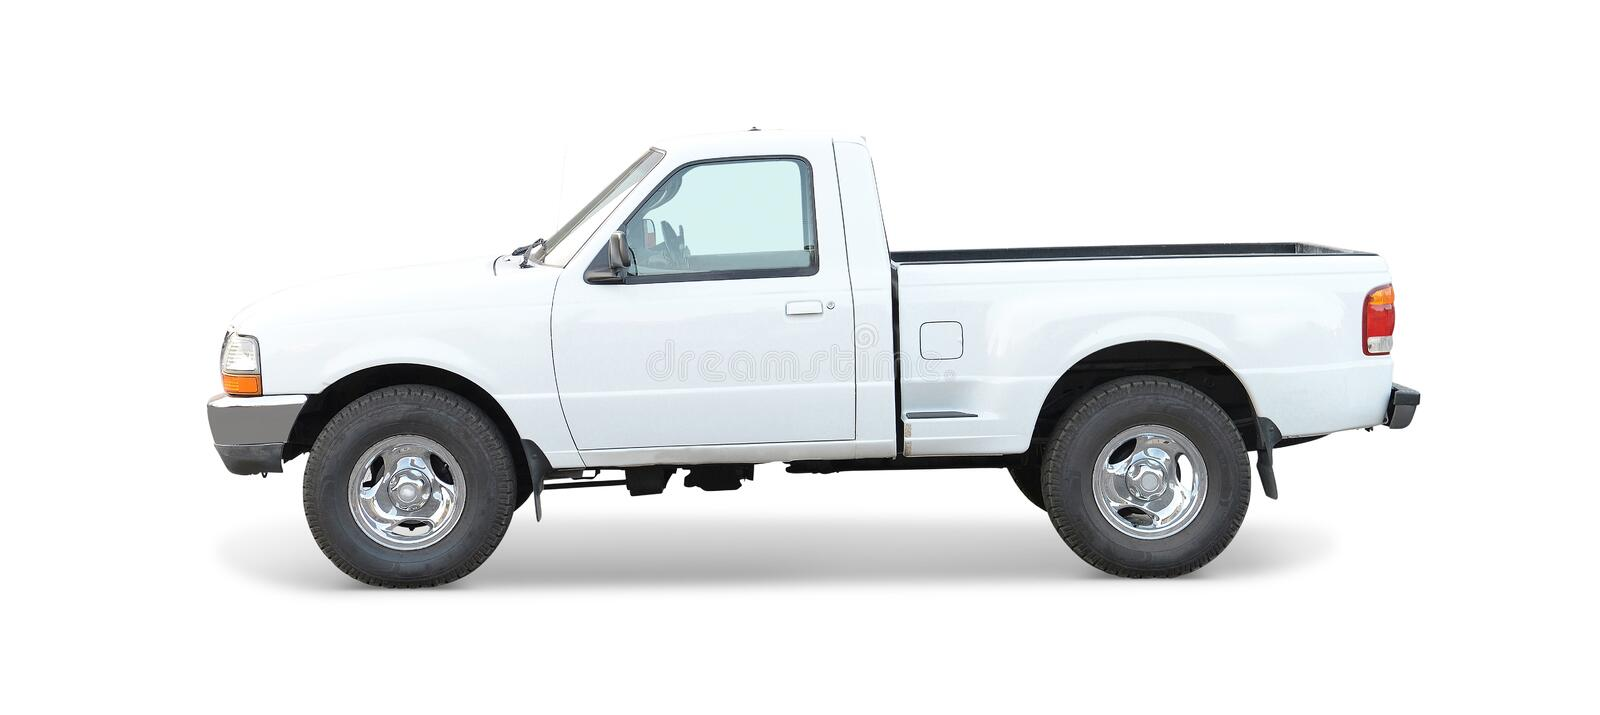 Ranger Pickup Truck. A pickup truck on white royalty free stock photography